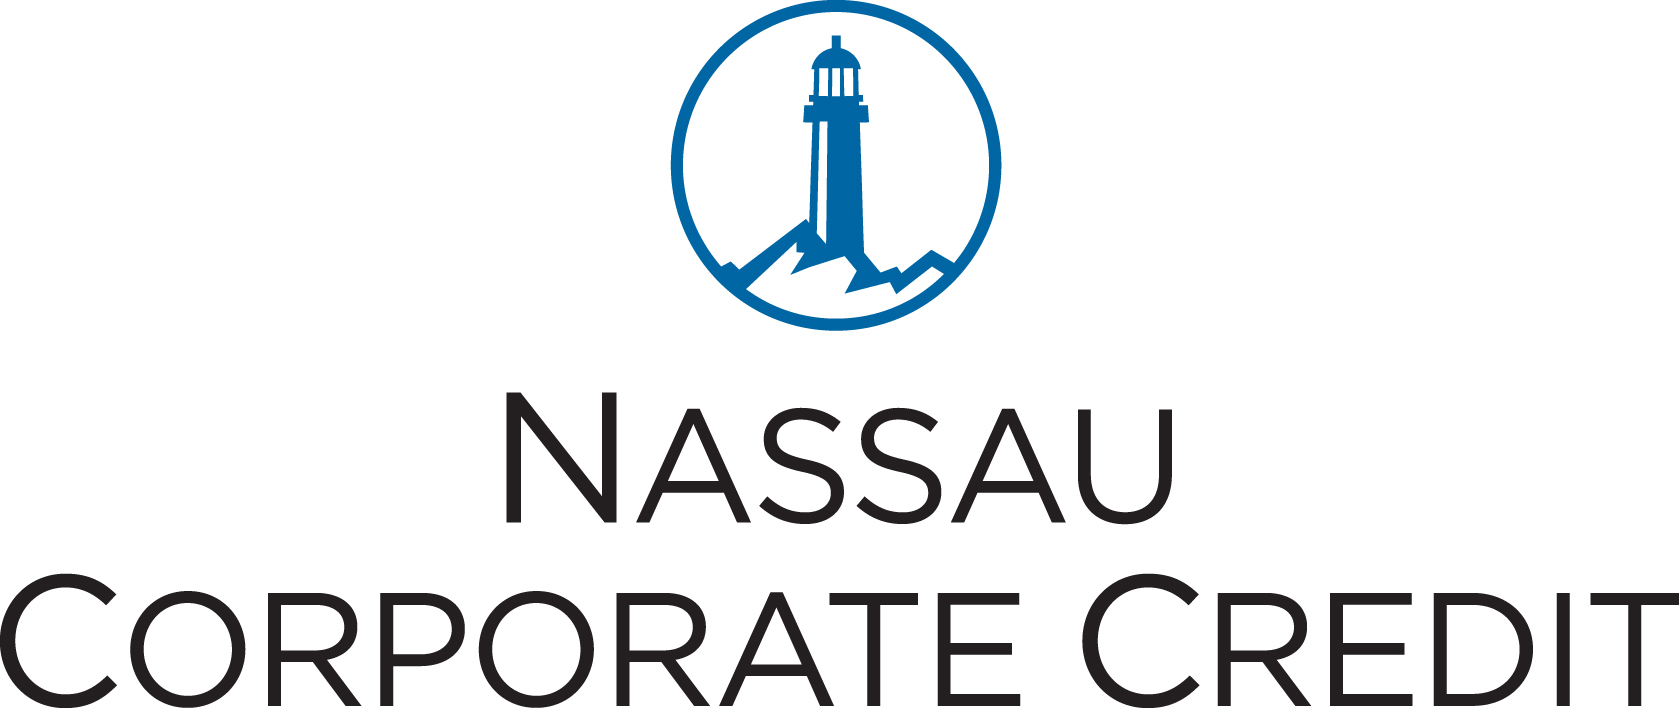 Nassau Corporate Credit Establishing Investment Management Business in London